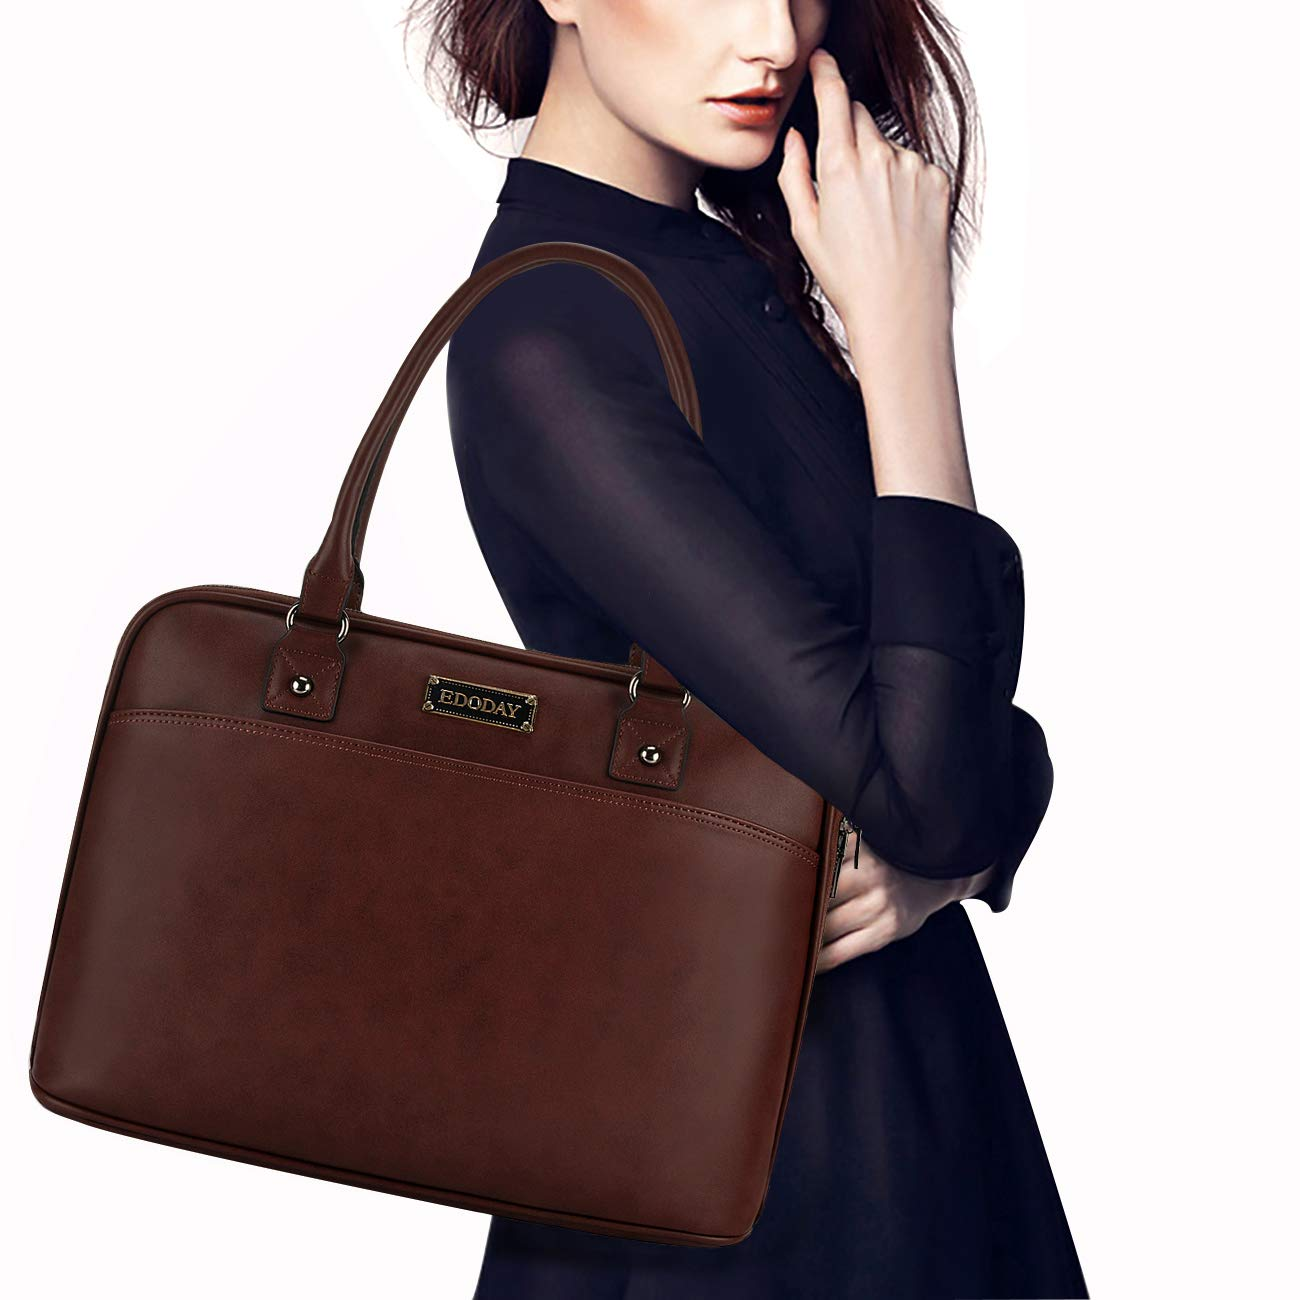 The Laptop Bag for Women travel product recommended by Noman Asghar on Pretty Progressive.